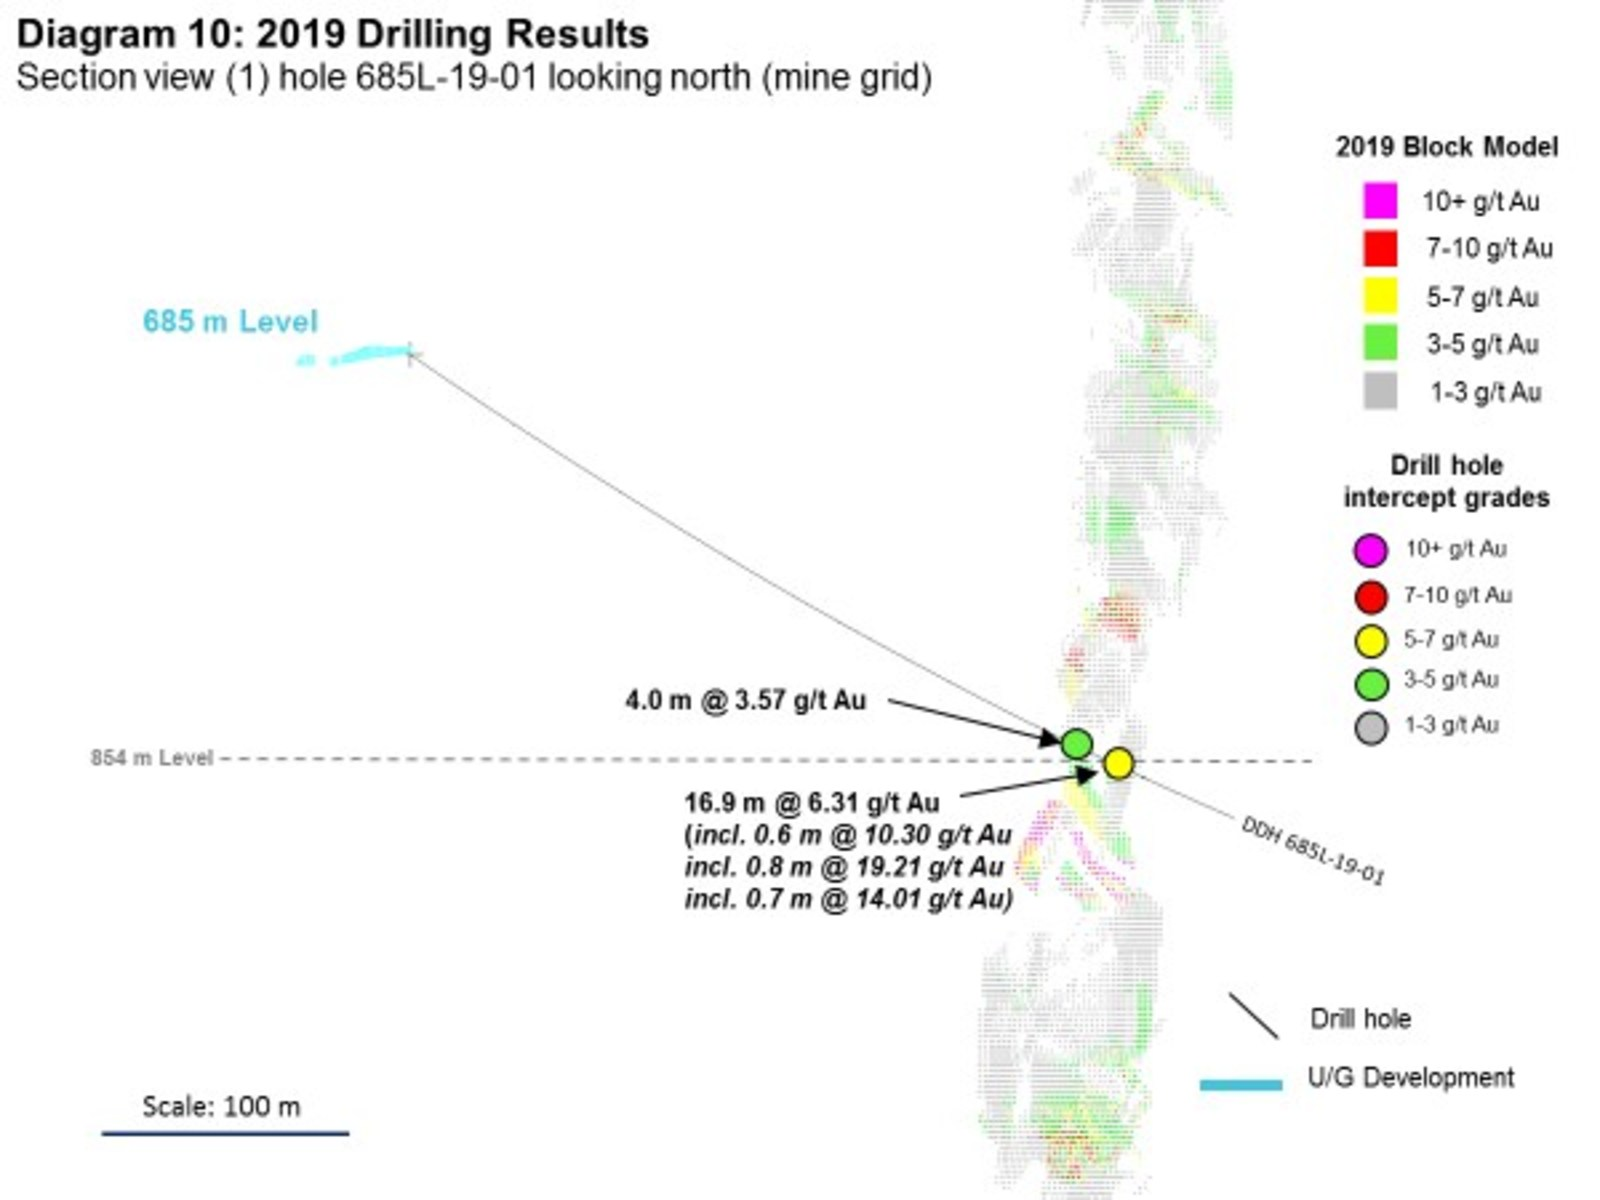 Diagram 10: 2019 Drilling Results